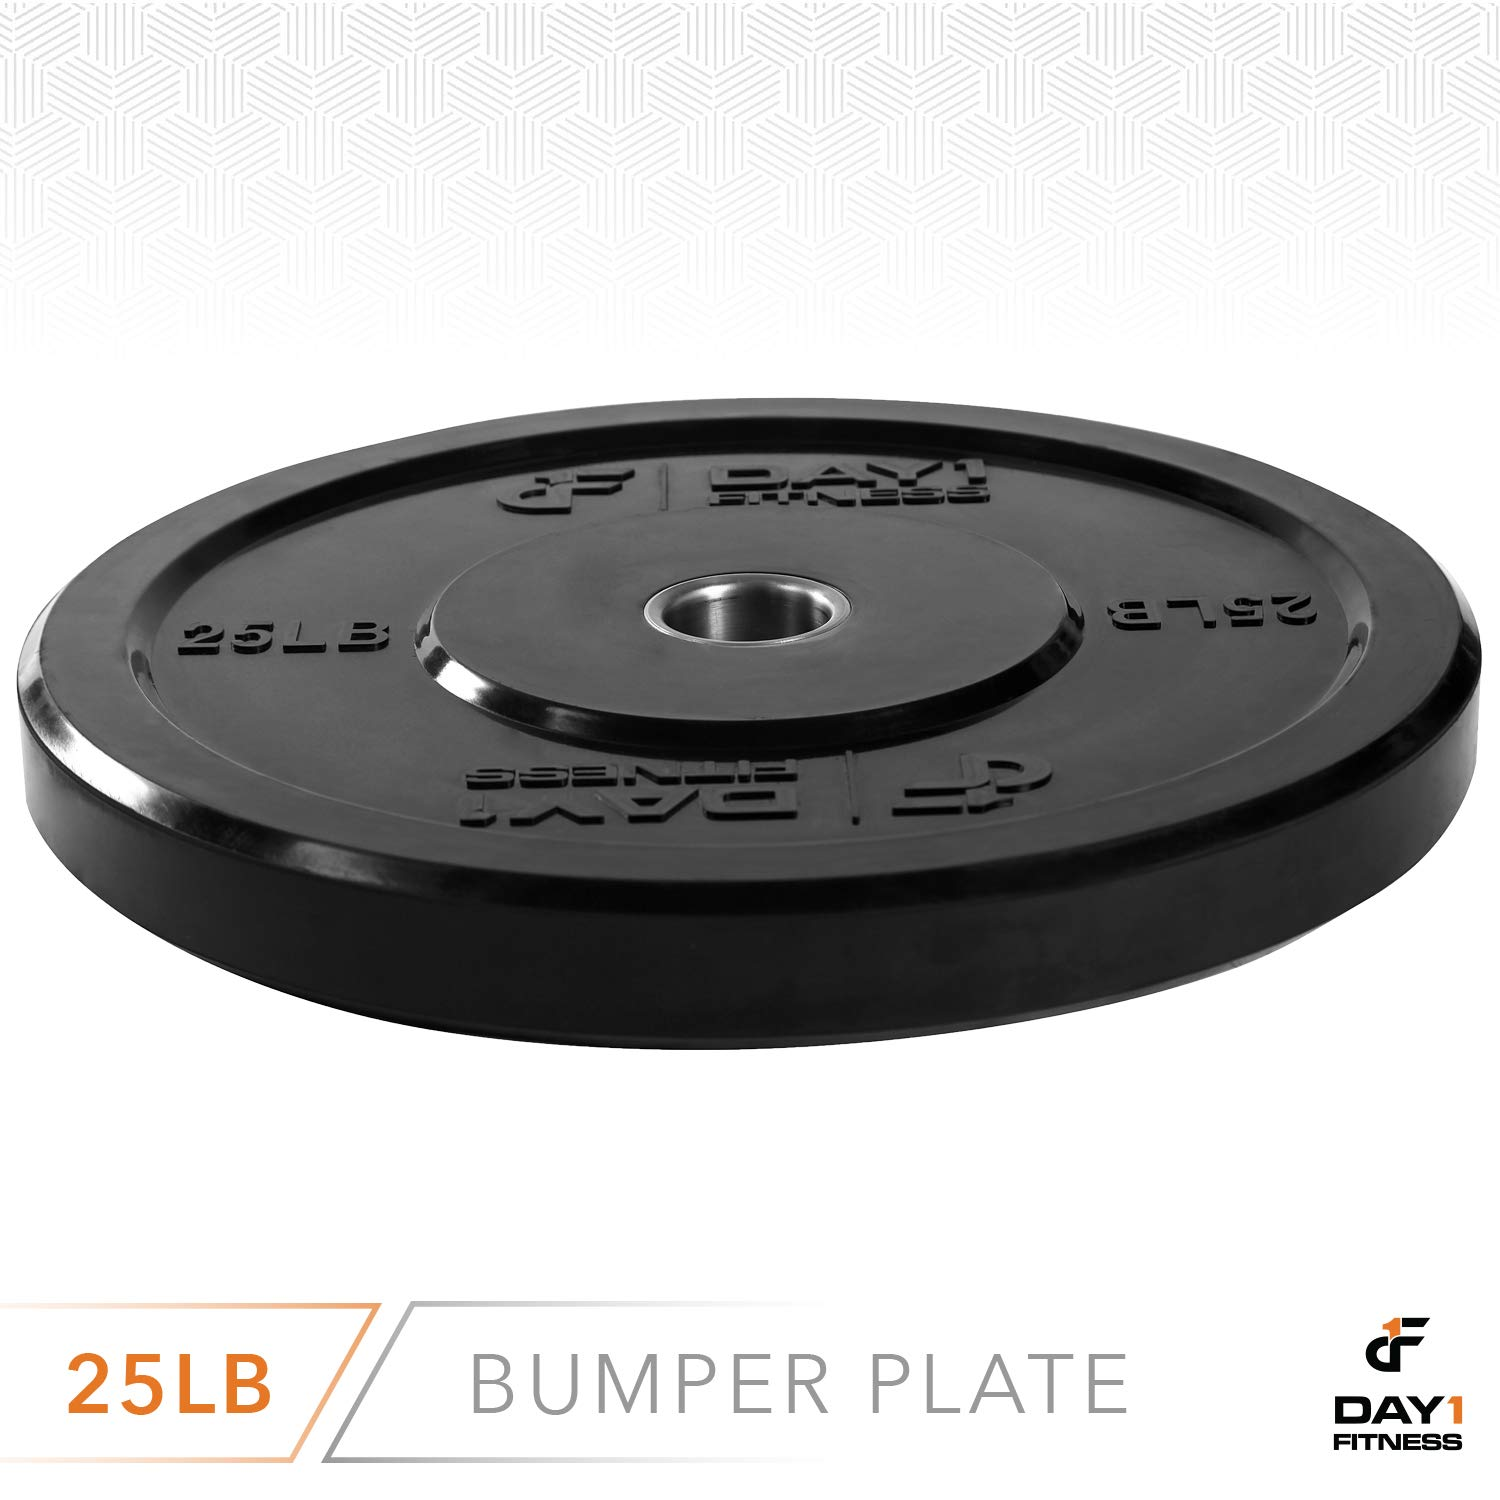 "Day 1 Fitness Olympic Bumper Weighted Plate 2"" for Barbells, Bars – 25 lb Single Plate - Shock-Absorbing, Minimal Bounce Steel Weights with Bumpers for Lifting, Strength Training, and Working Out by Day 1 Fitness (Image #3)"